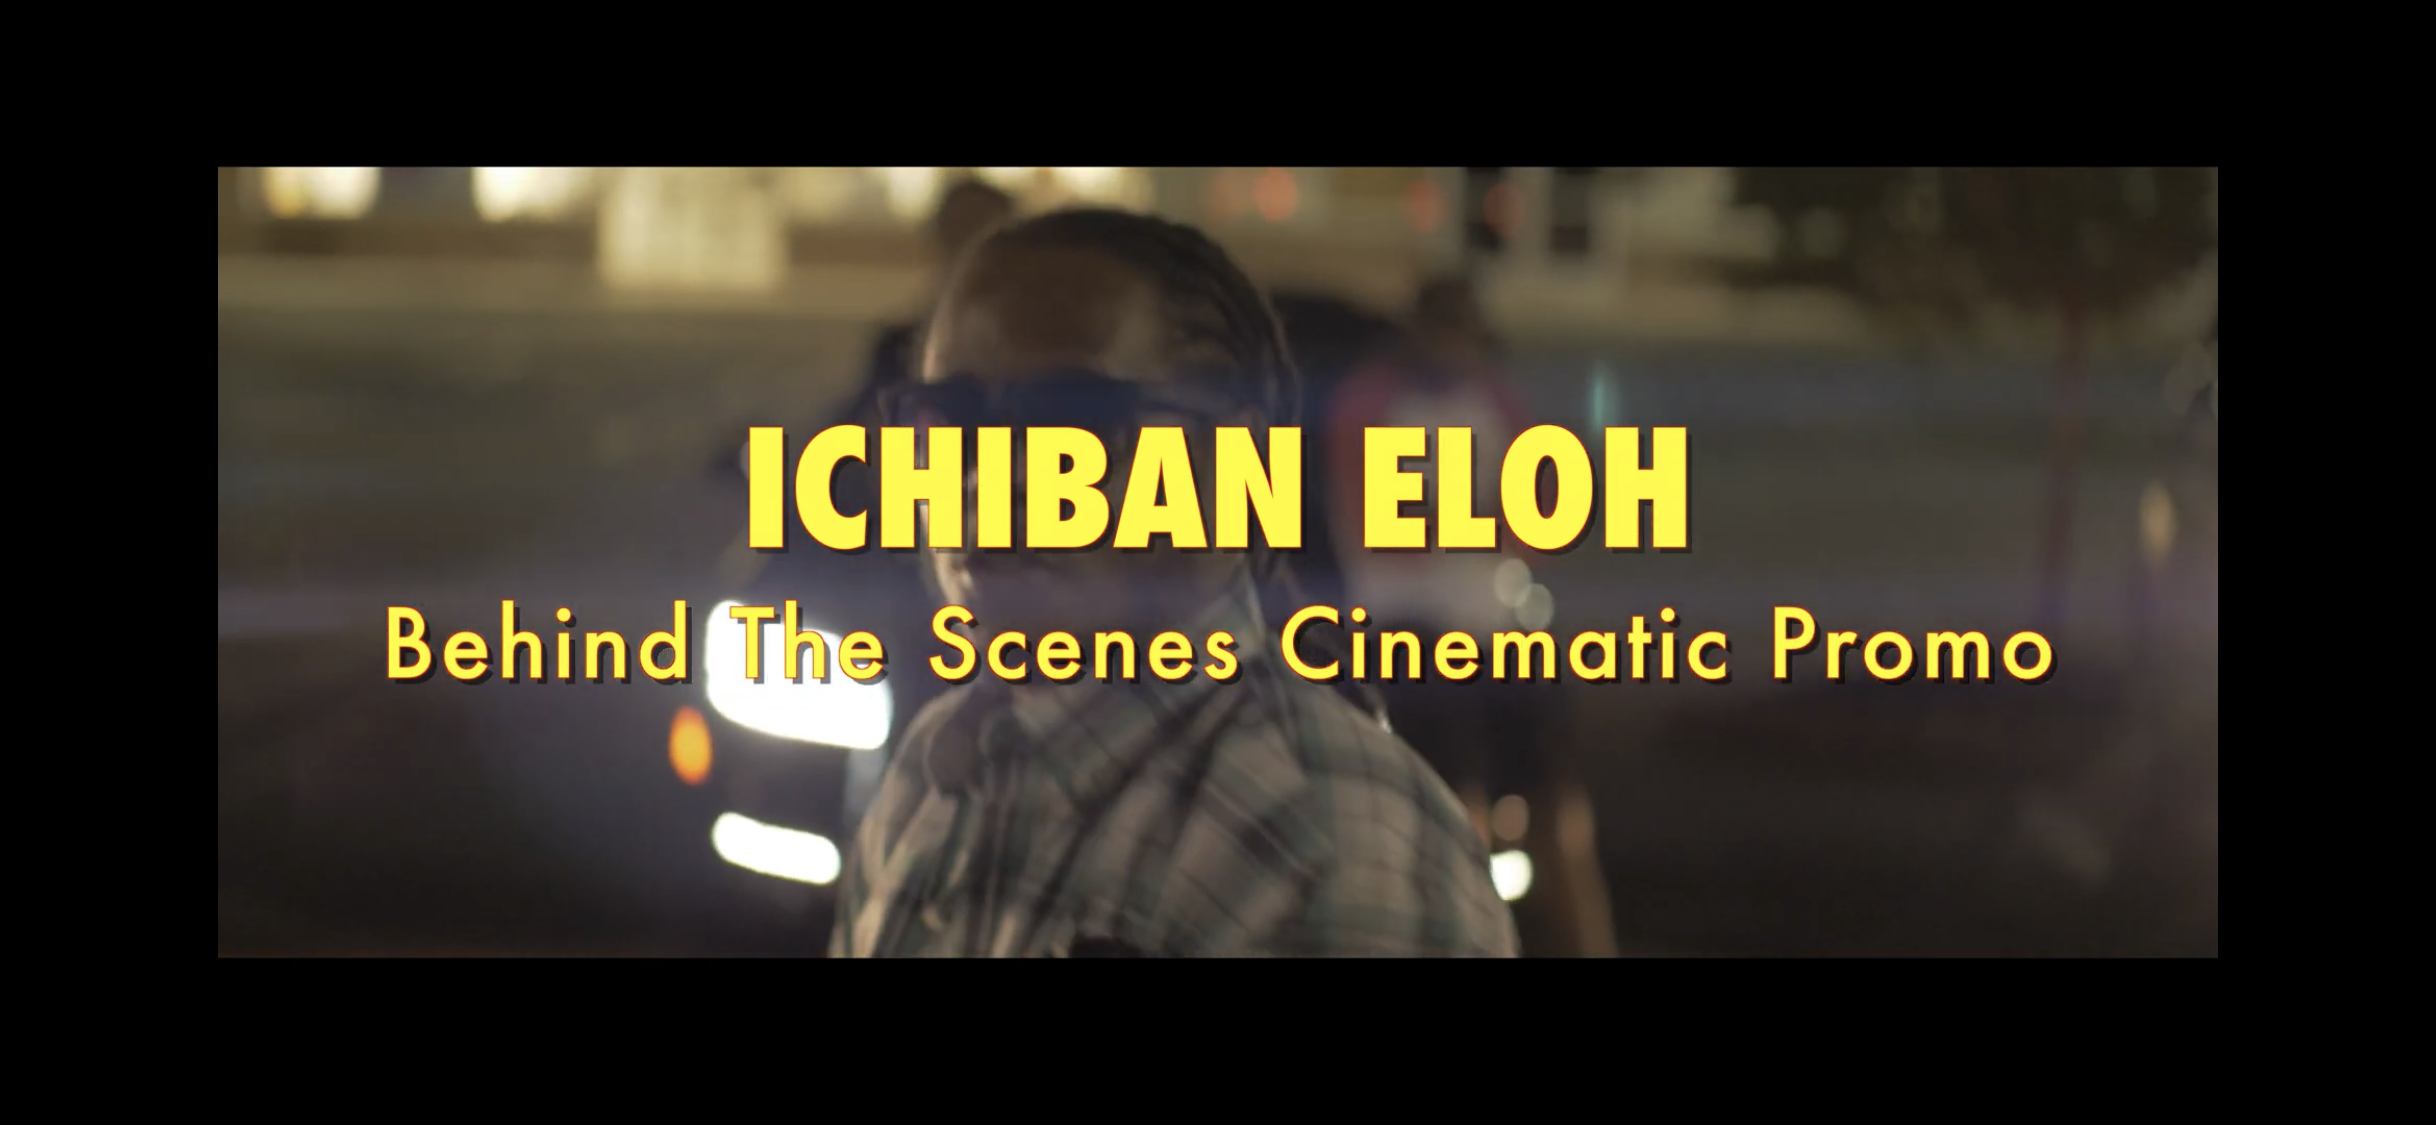 Behind the Scenes of Eloh Kush x Budamunk Video Shoot-(ICHIBAN ELOH) | Video